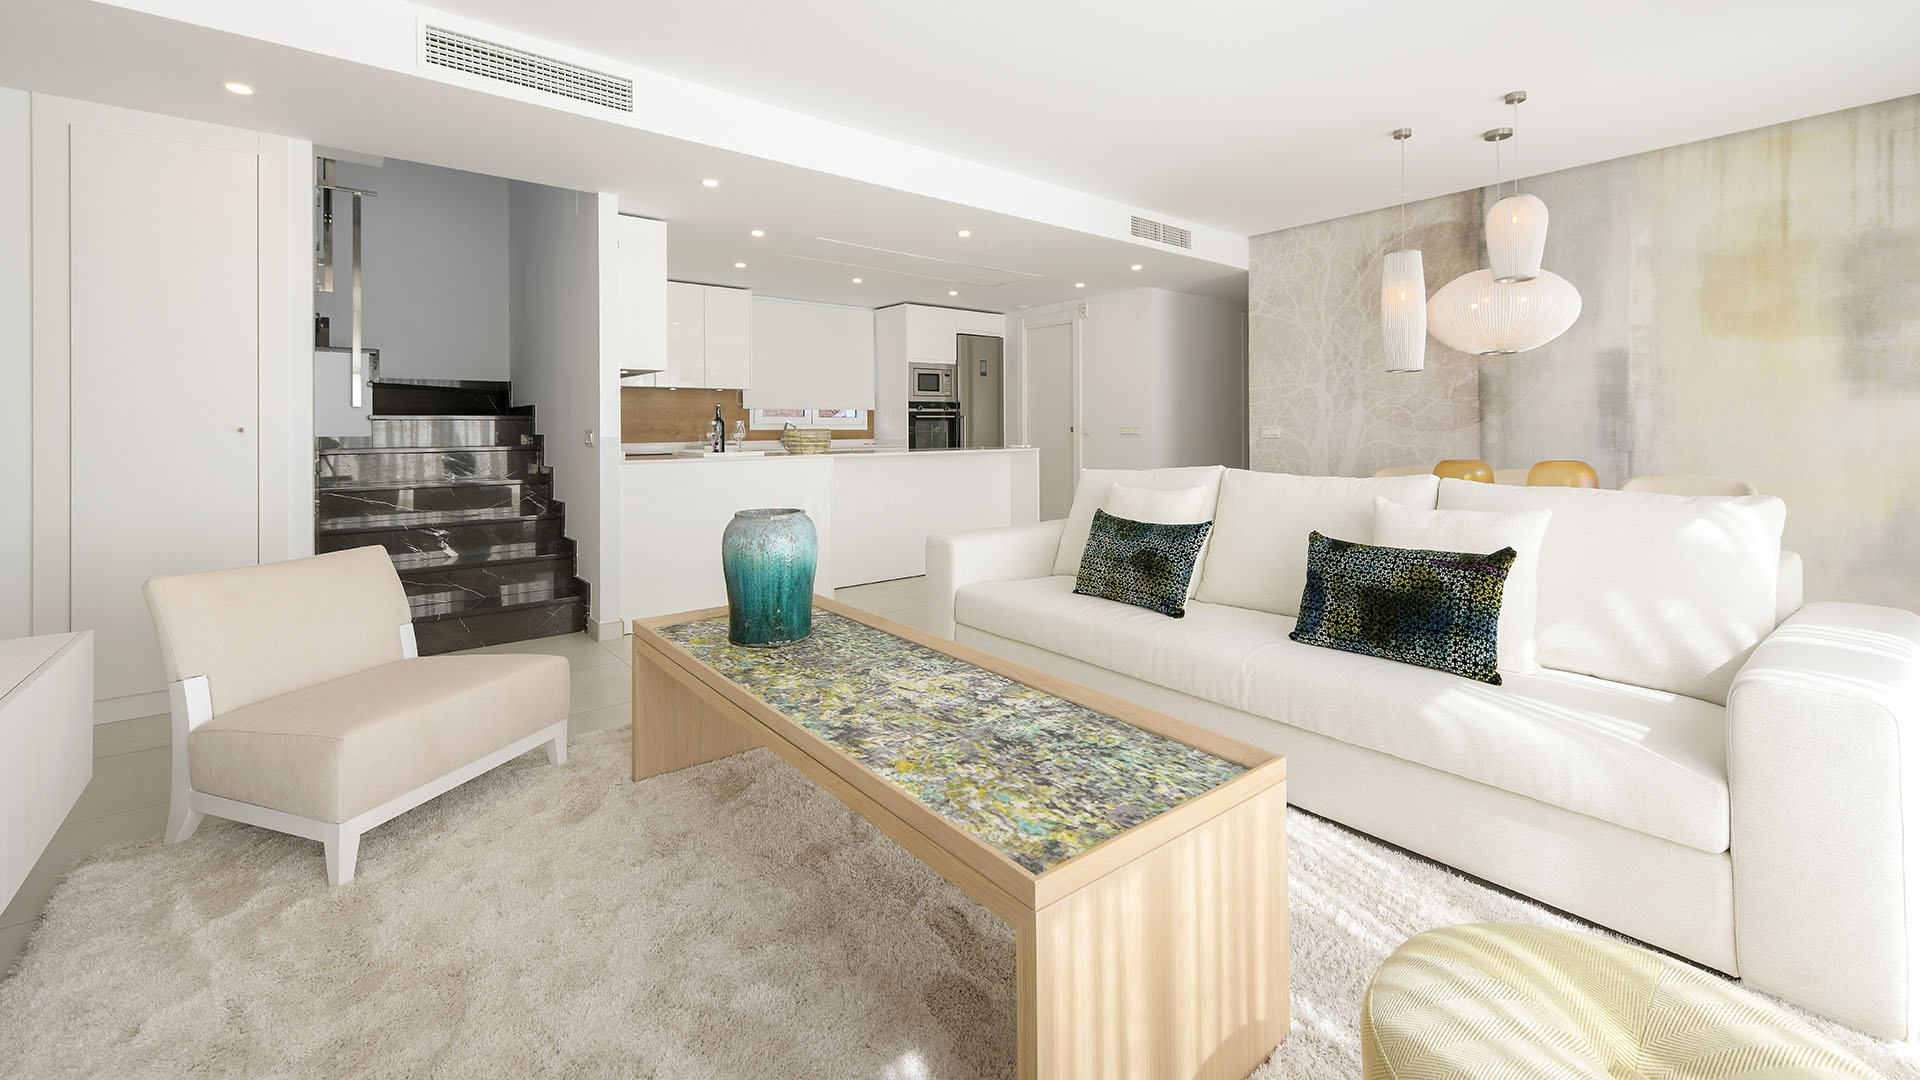 Elements: Modern apartments in a quiet residential area close to Marbella